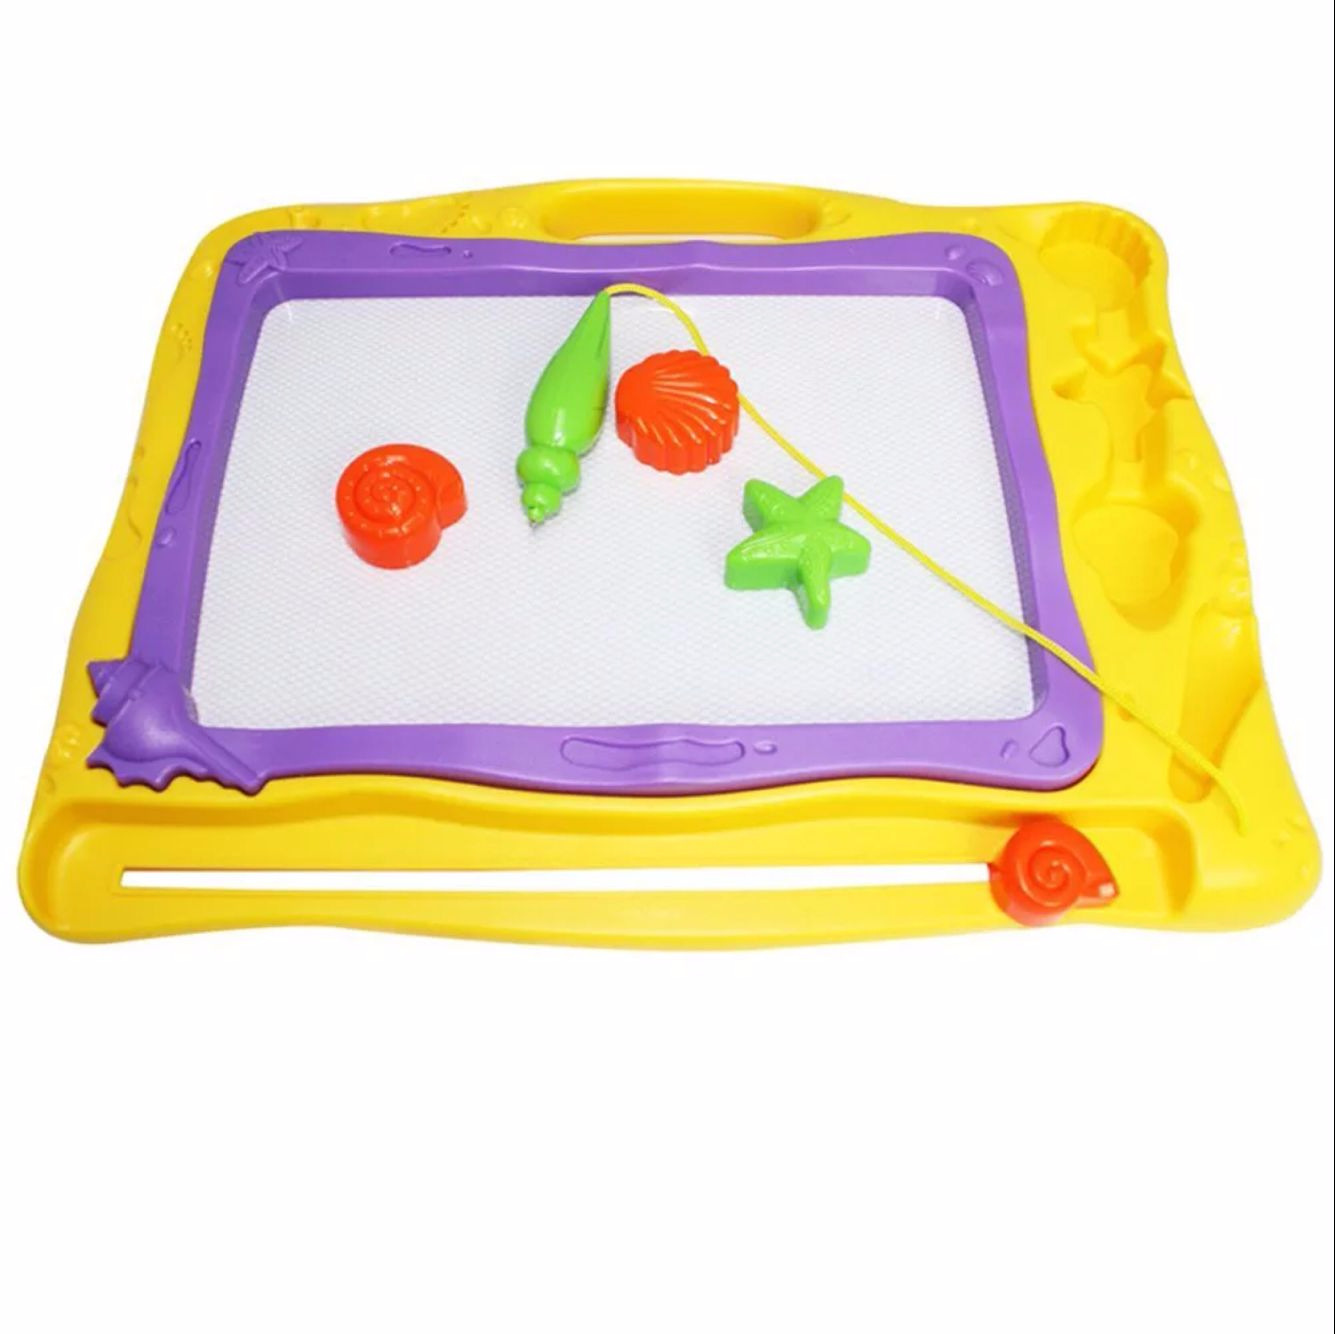 Qiqu Toys 6688a CHILDREN'S Drawing Board Oversized Color Magnetic Drawing Board Children WordPad Baby Toy 3-Year-Old